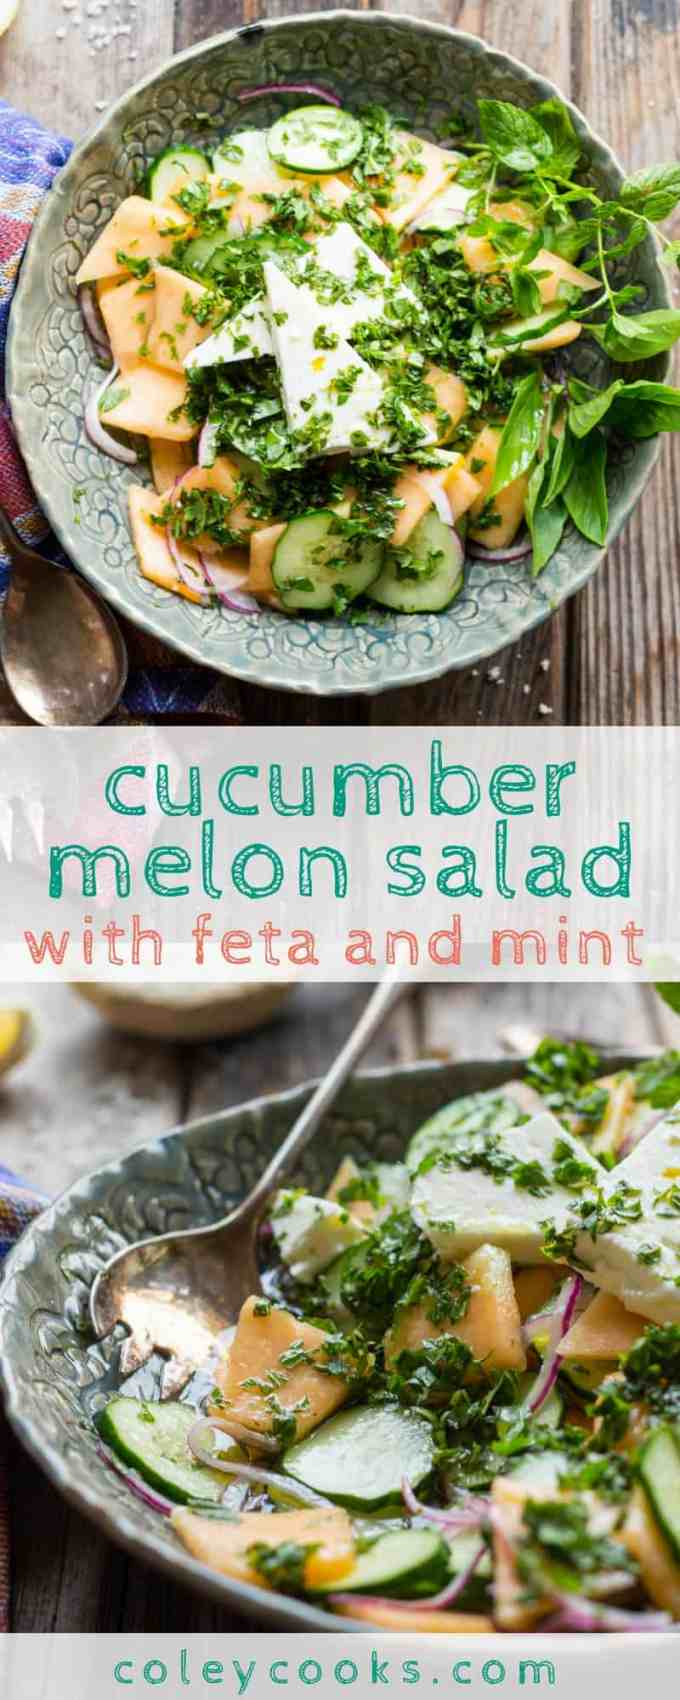 CUCUMBER MELON SALAD with FETA AND MINT | This easy, refreshing Cucumber Melon Salad with Feta + Mint is loaded with crisp cucumber, sweet summer cantaloupe, and salty chards of feta cheese. Perfect easy sumer salad recipe! #glutenfree #vegetarian | ColeyCooks.com